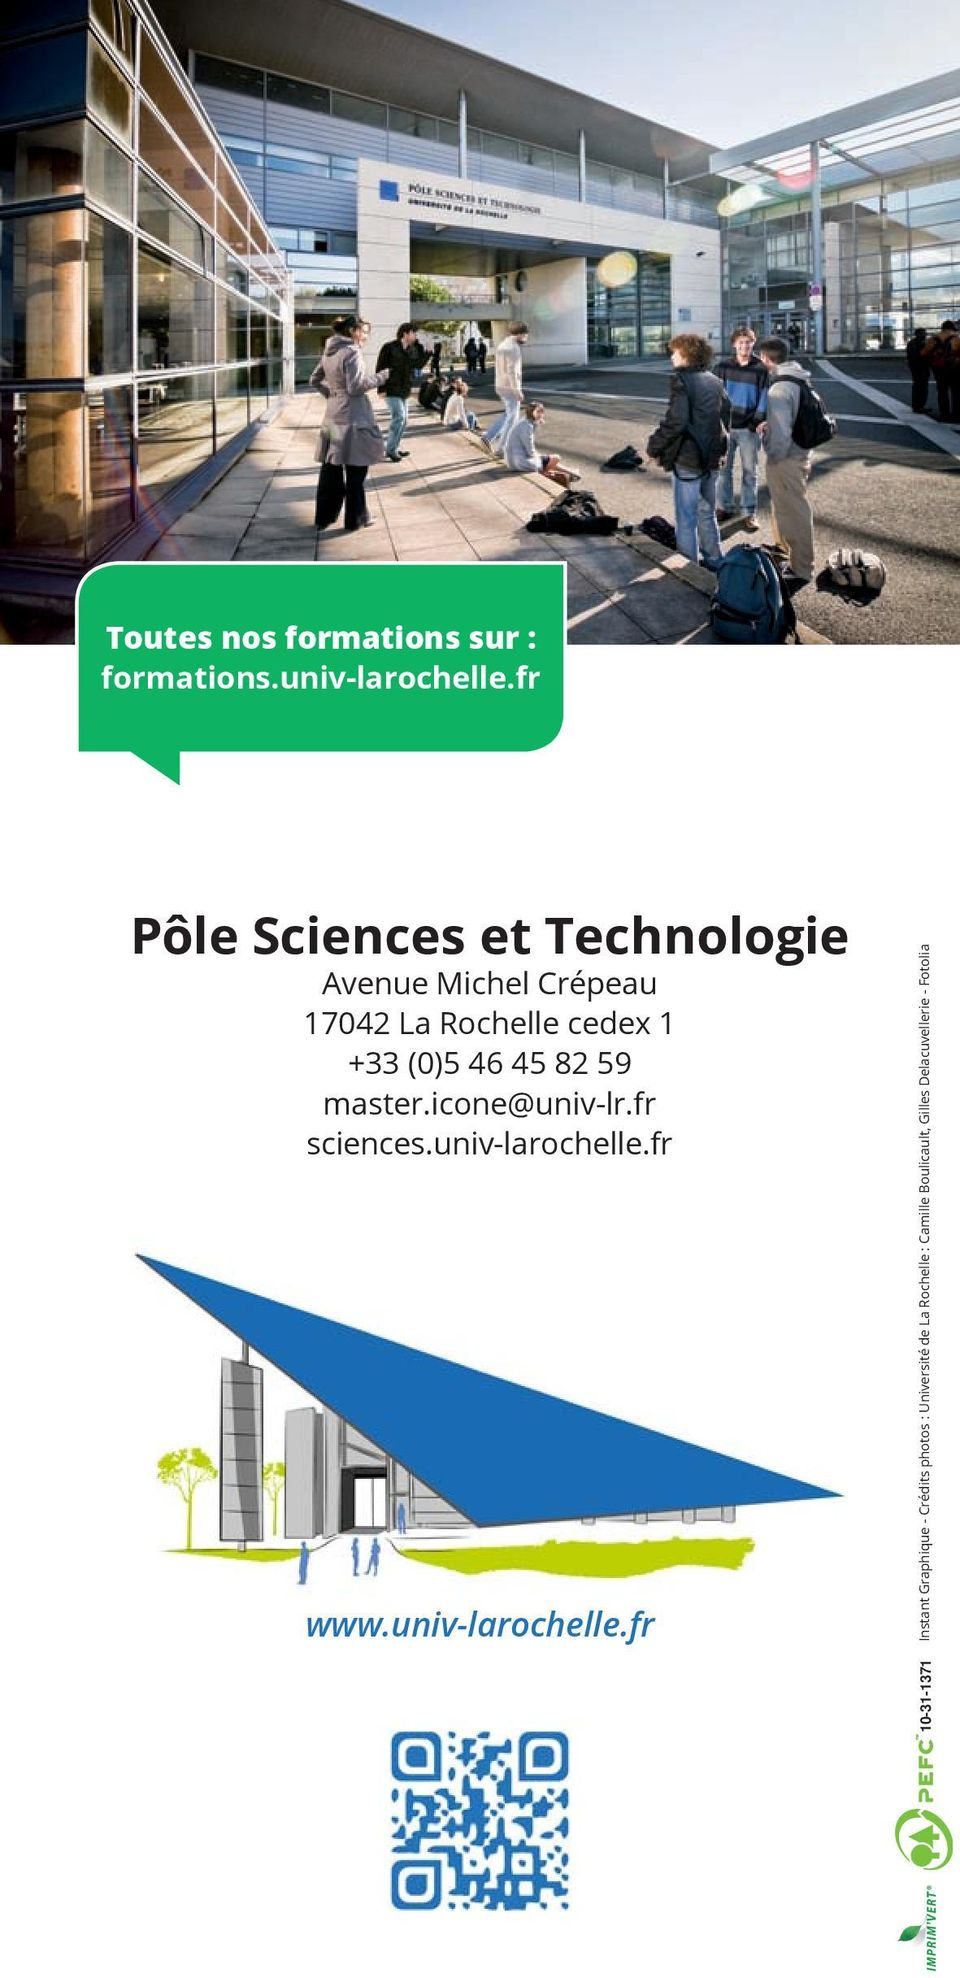 46 45 82 59 master.icone@univ-lr.fr sciences.univ-larochelle.